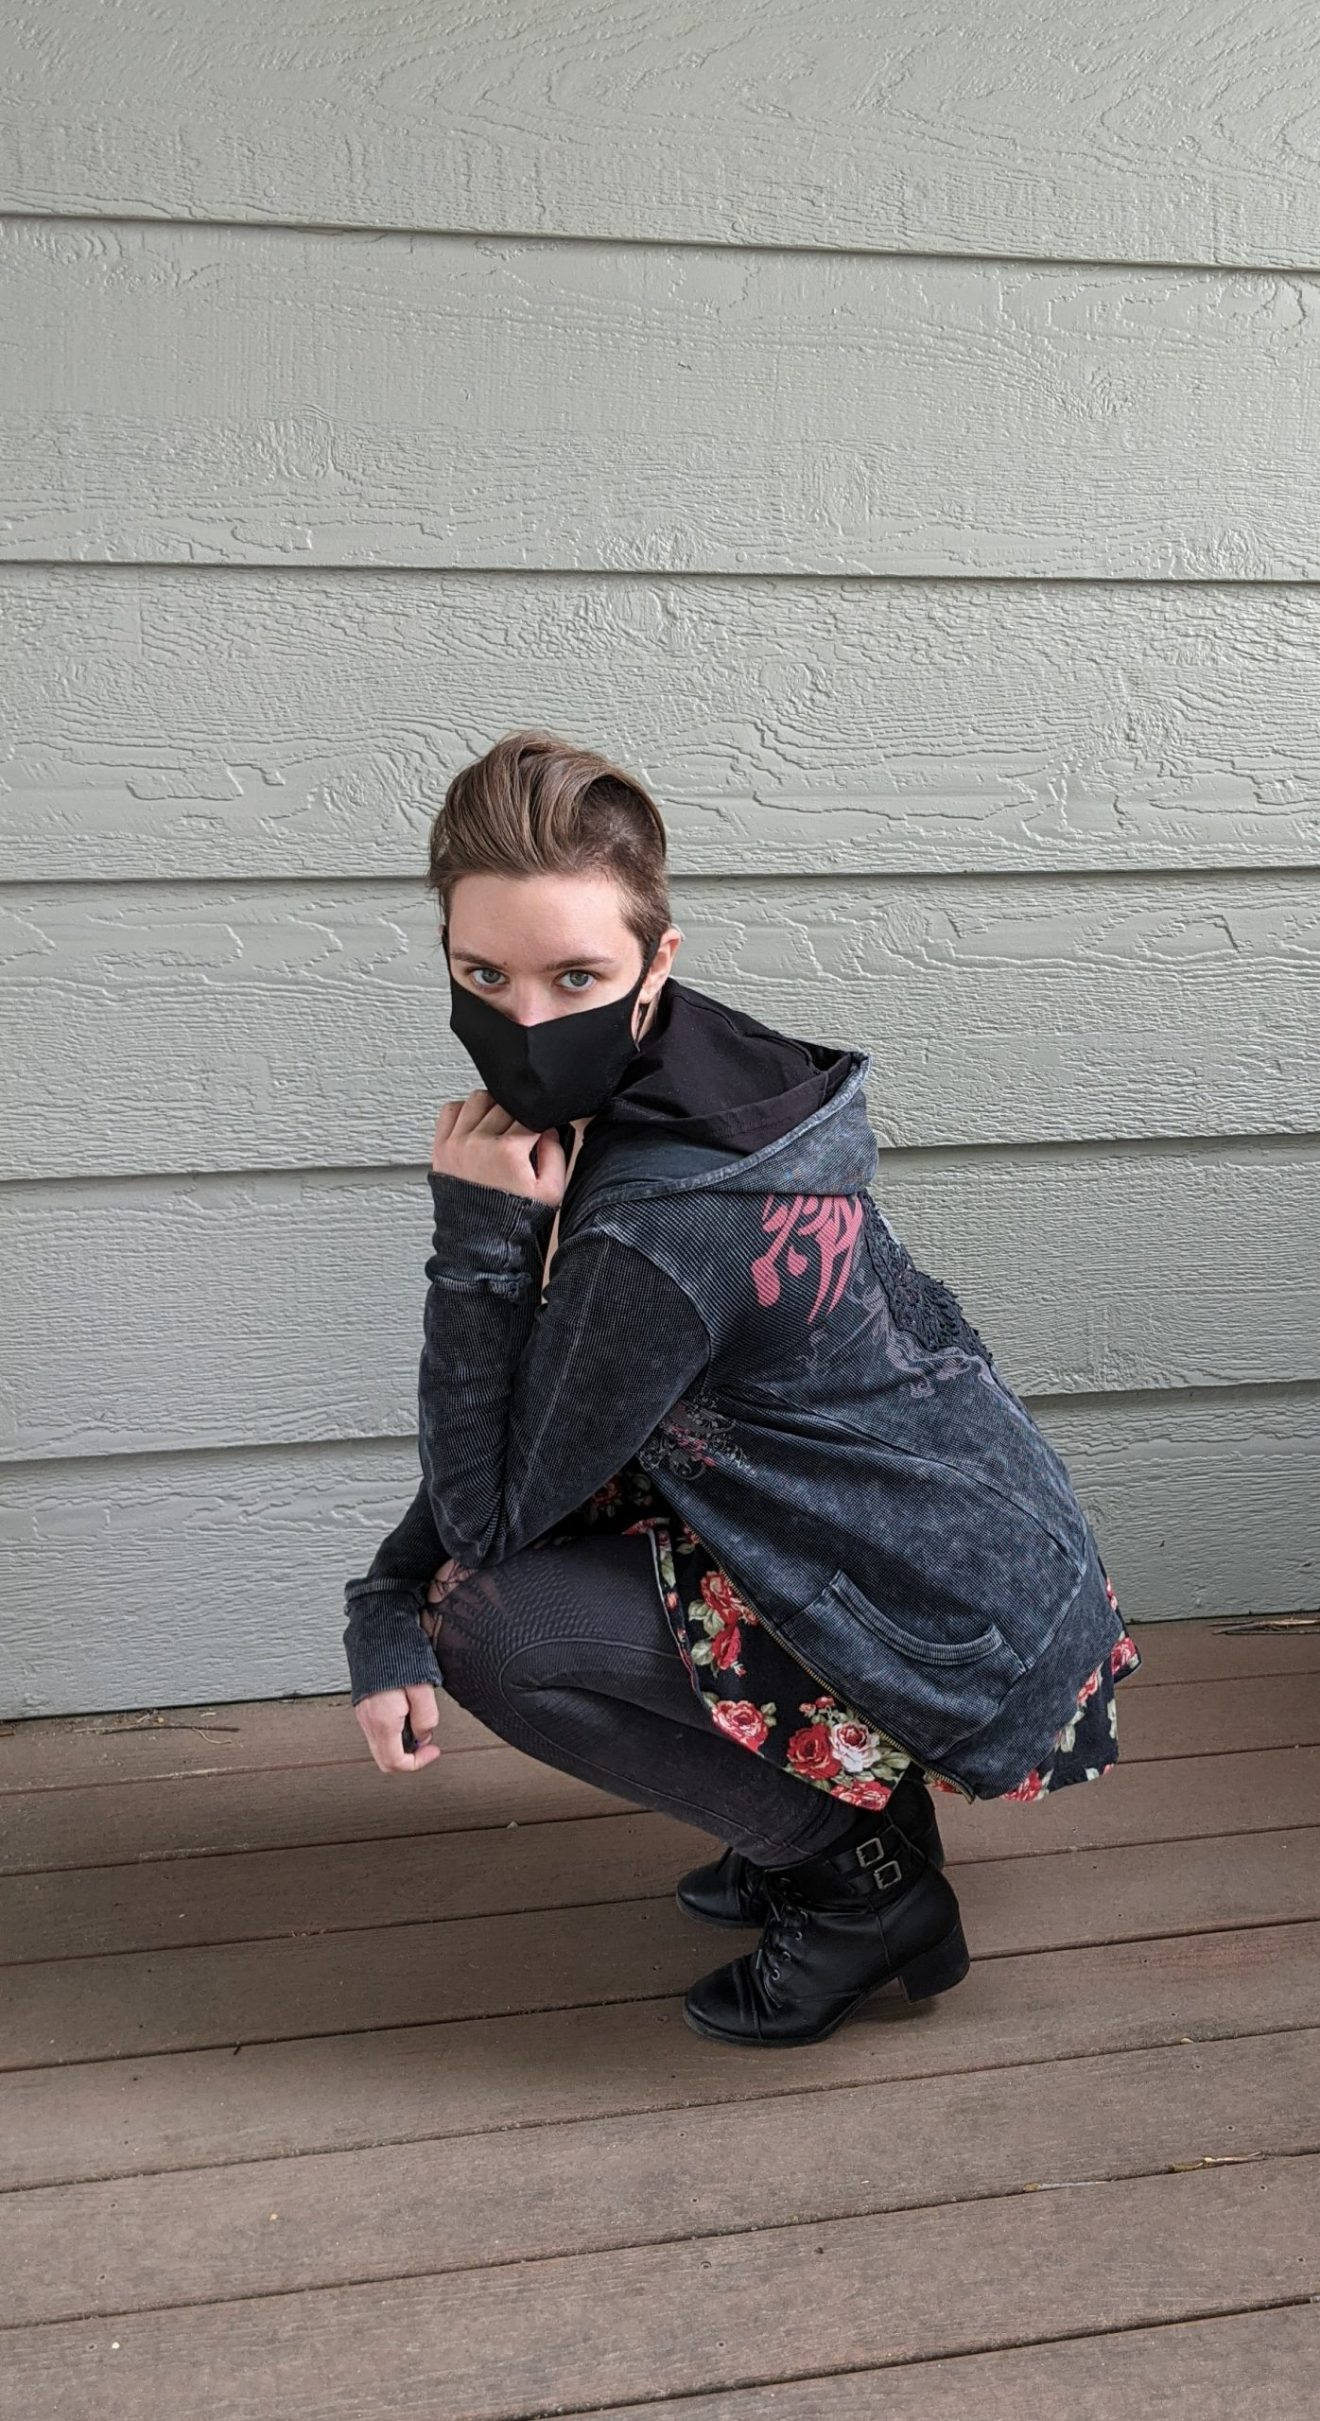 Beautiful Heartache Alissa Ackerman Story Behind The Cloth fashion blog edgy sporty romantic outfit 2 scaled